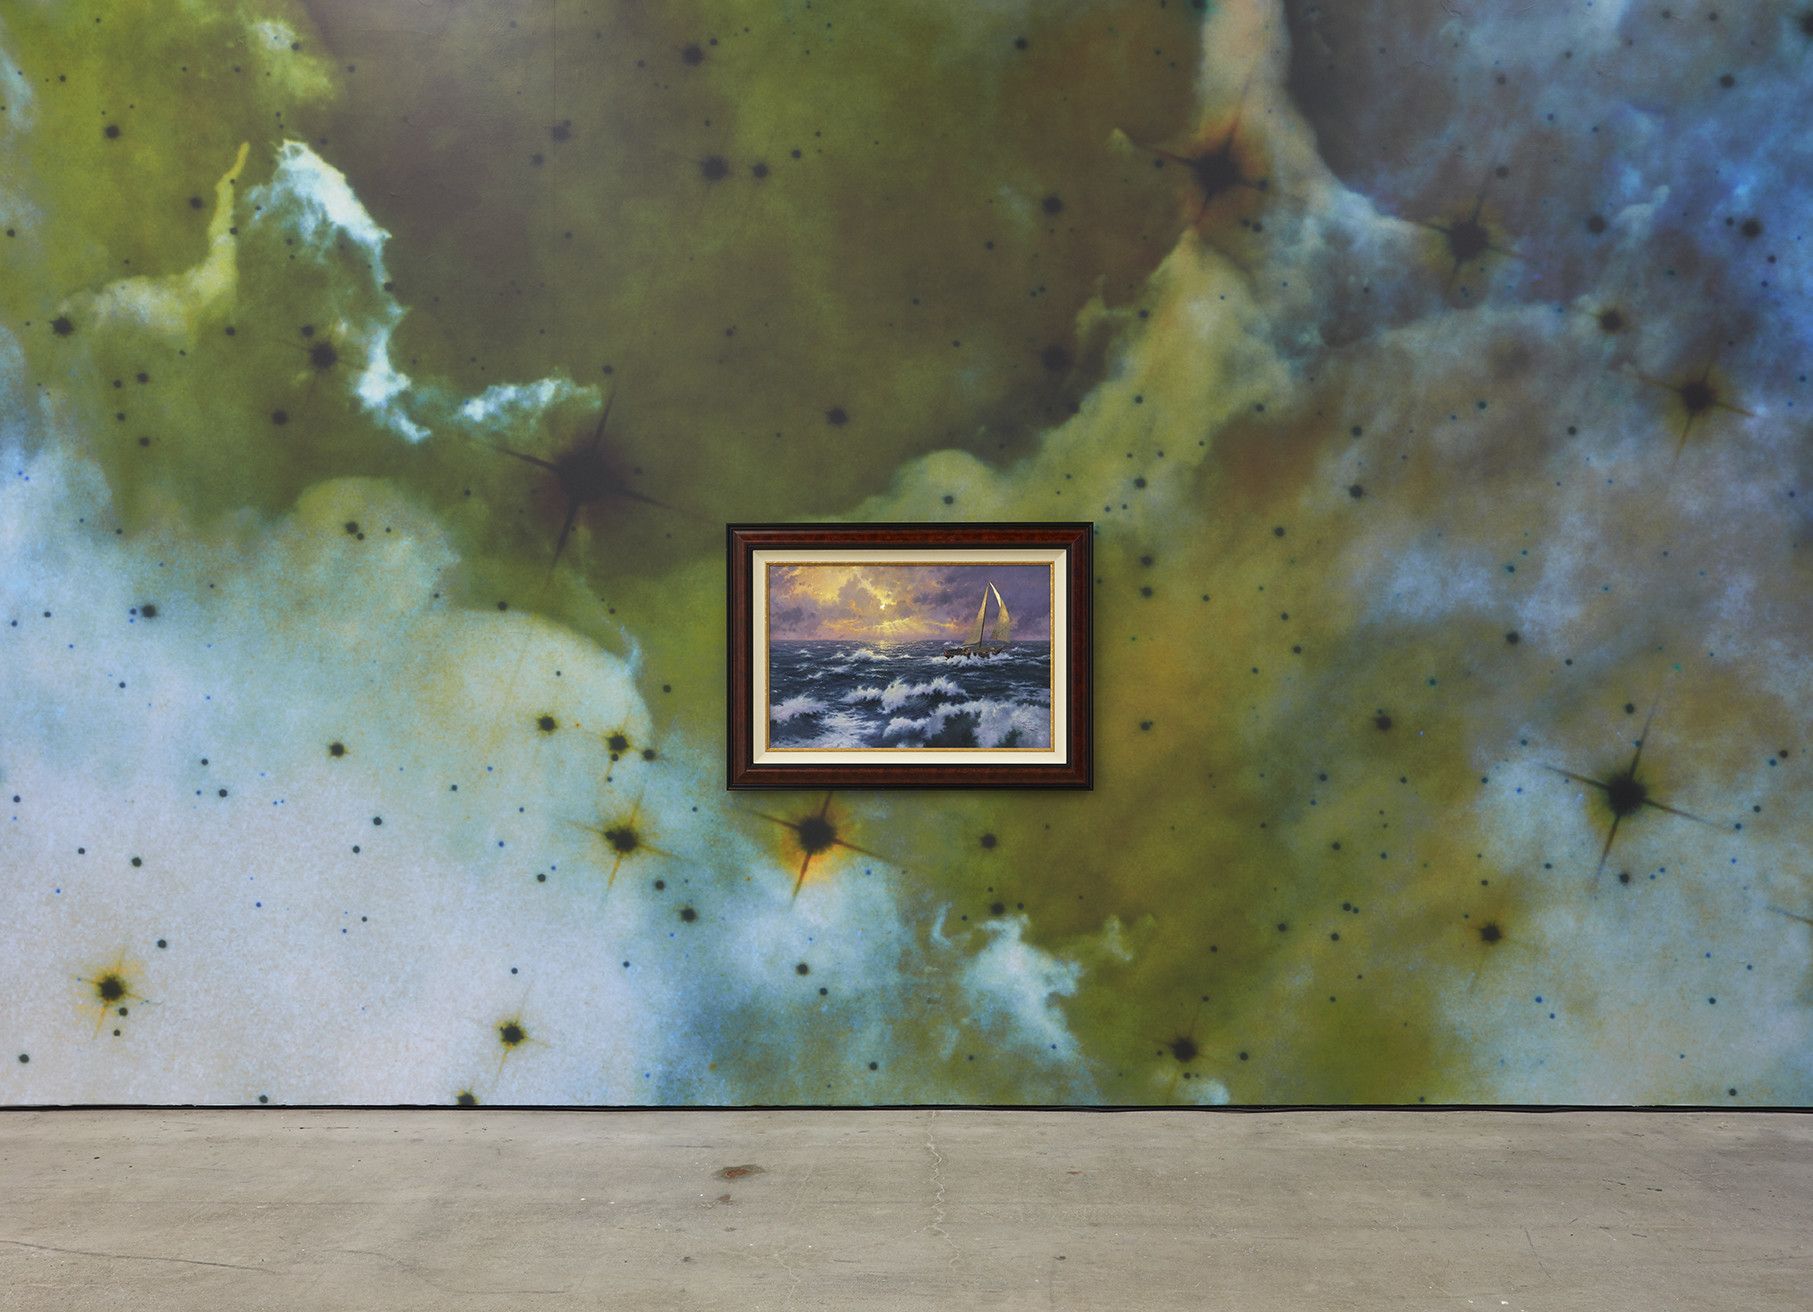 A painting by Thomas Kinkade on cosmic photographic wallpaper by Mungo Thomson at Nicodim Gallery.